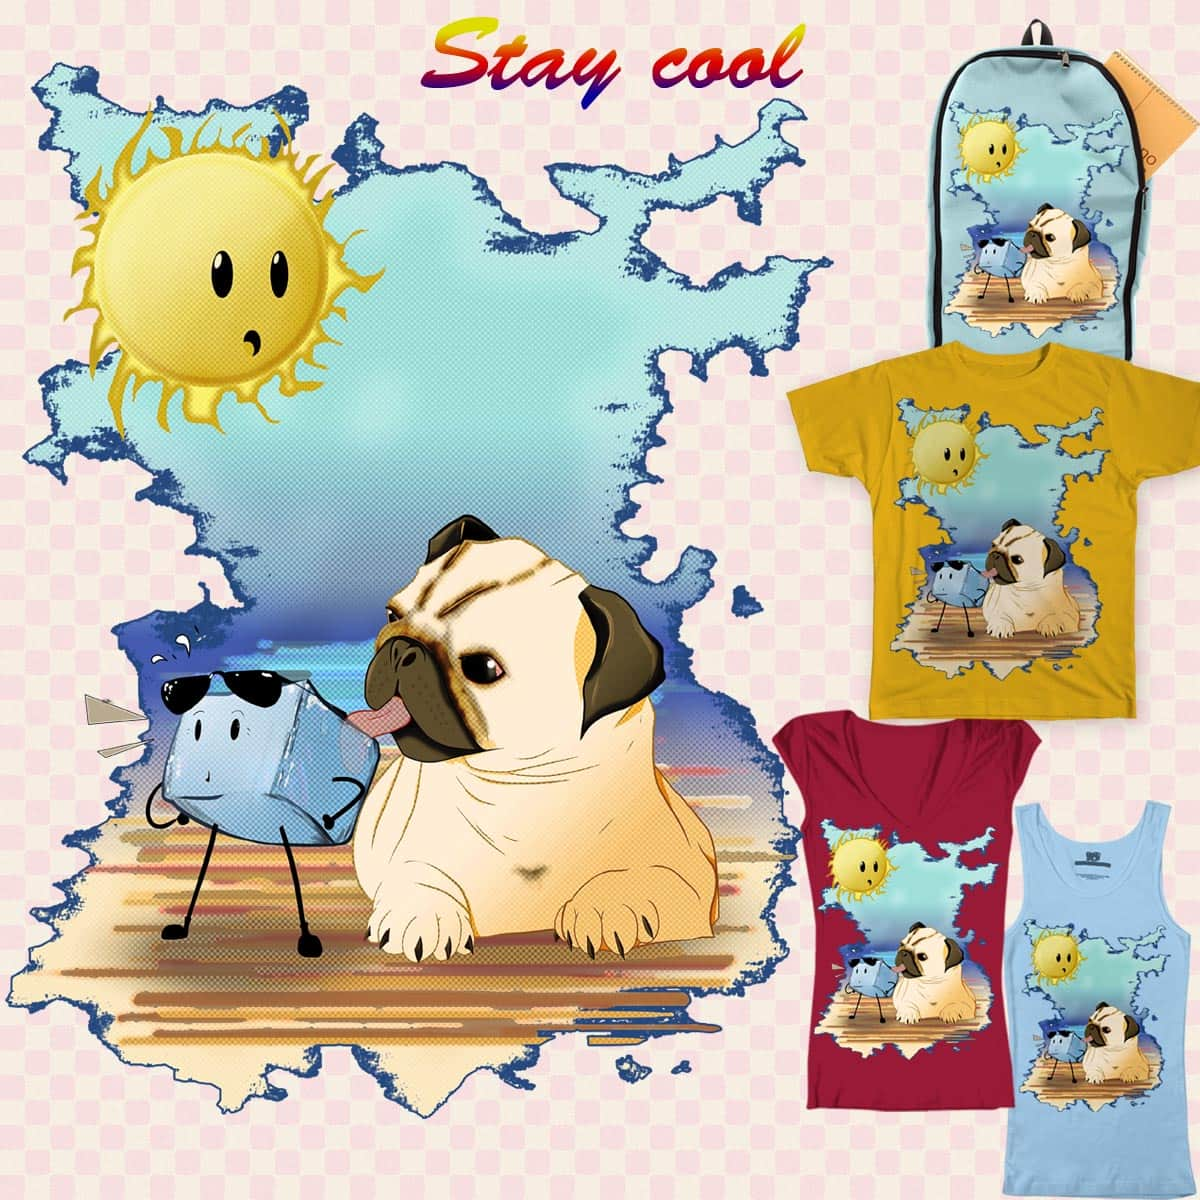 Stay Cool, Stay Chill by OliverDemers on Threadless